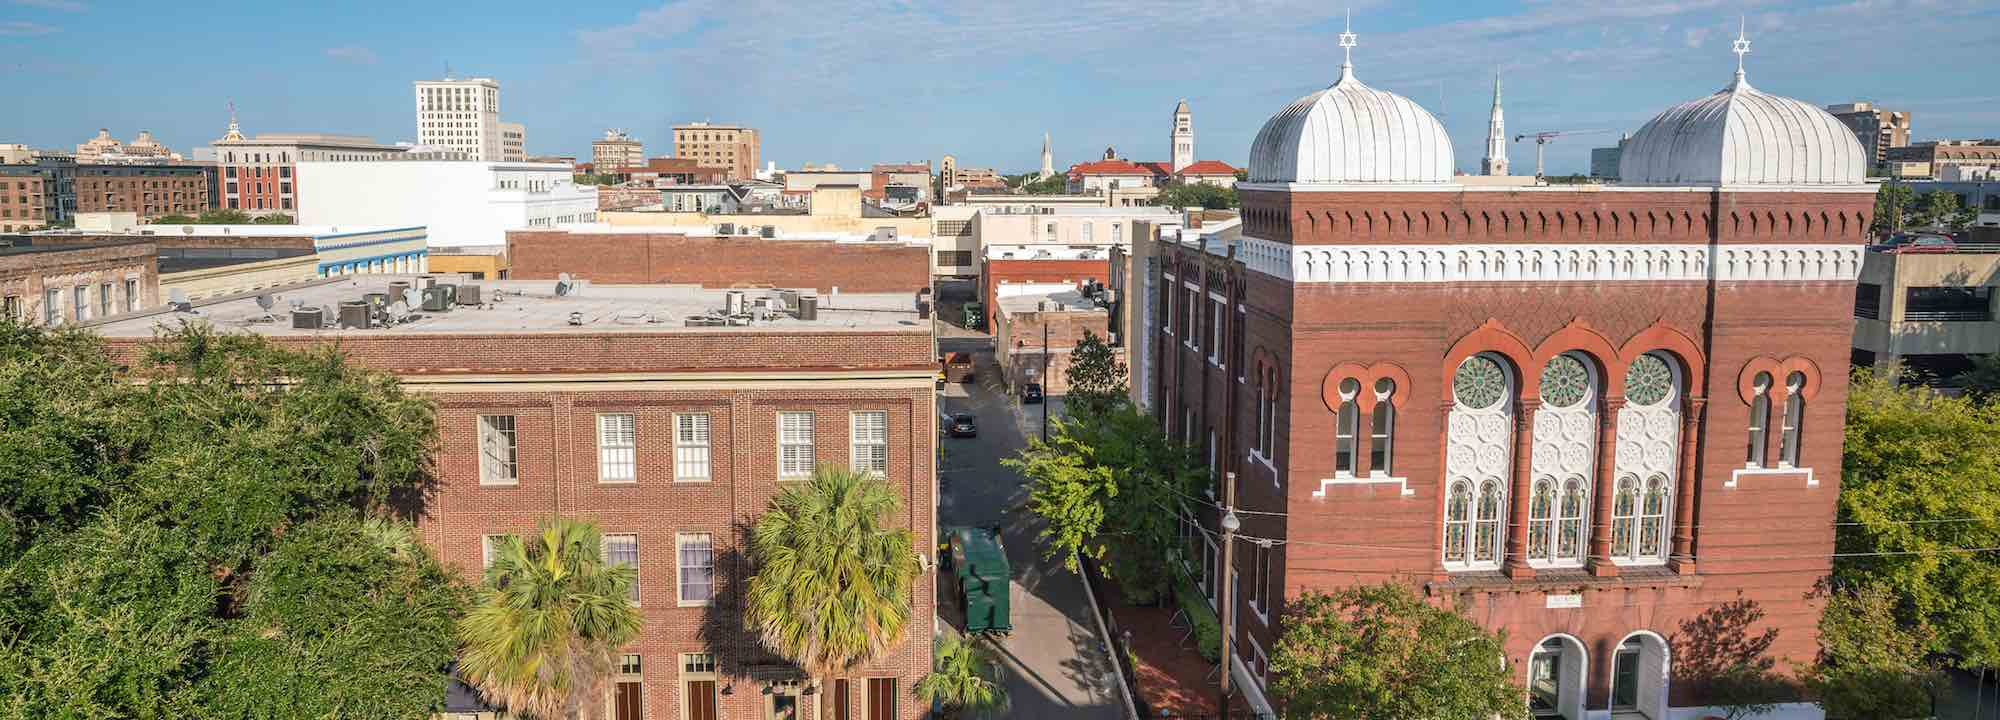 View of Montgomery Street, Savannah, GA, with the former B'nai Brith Jacob Synagogue.